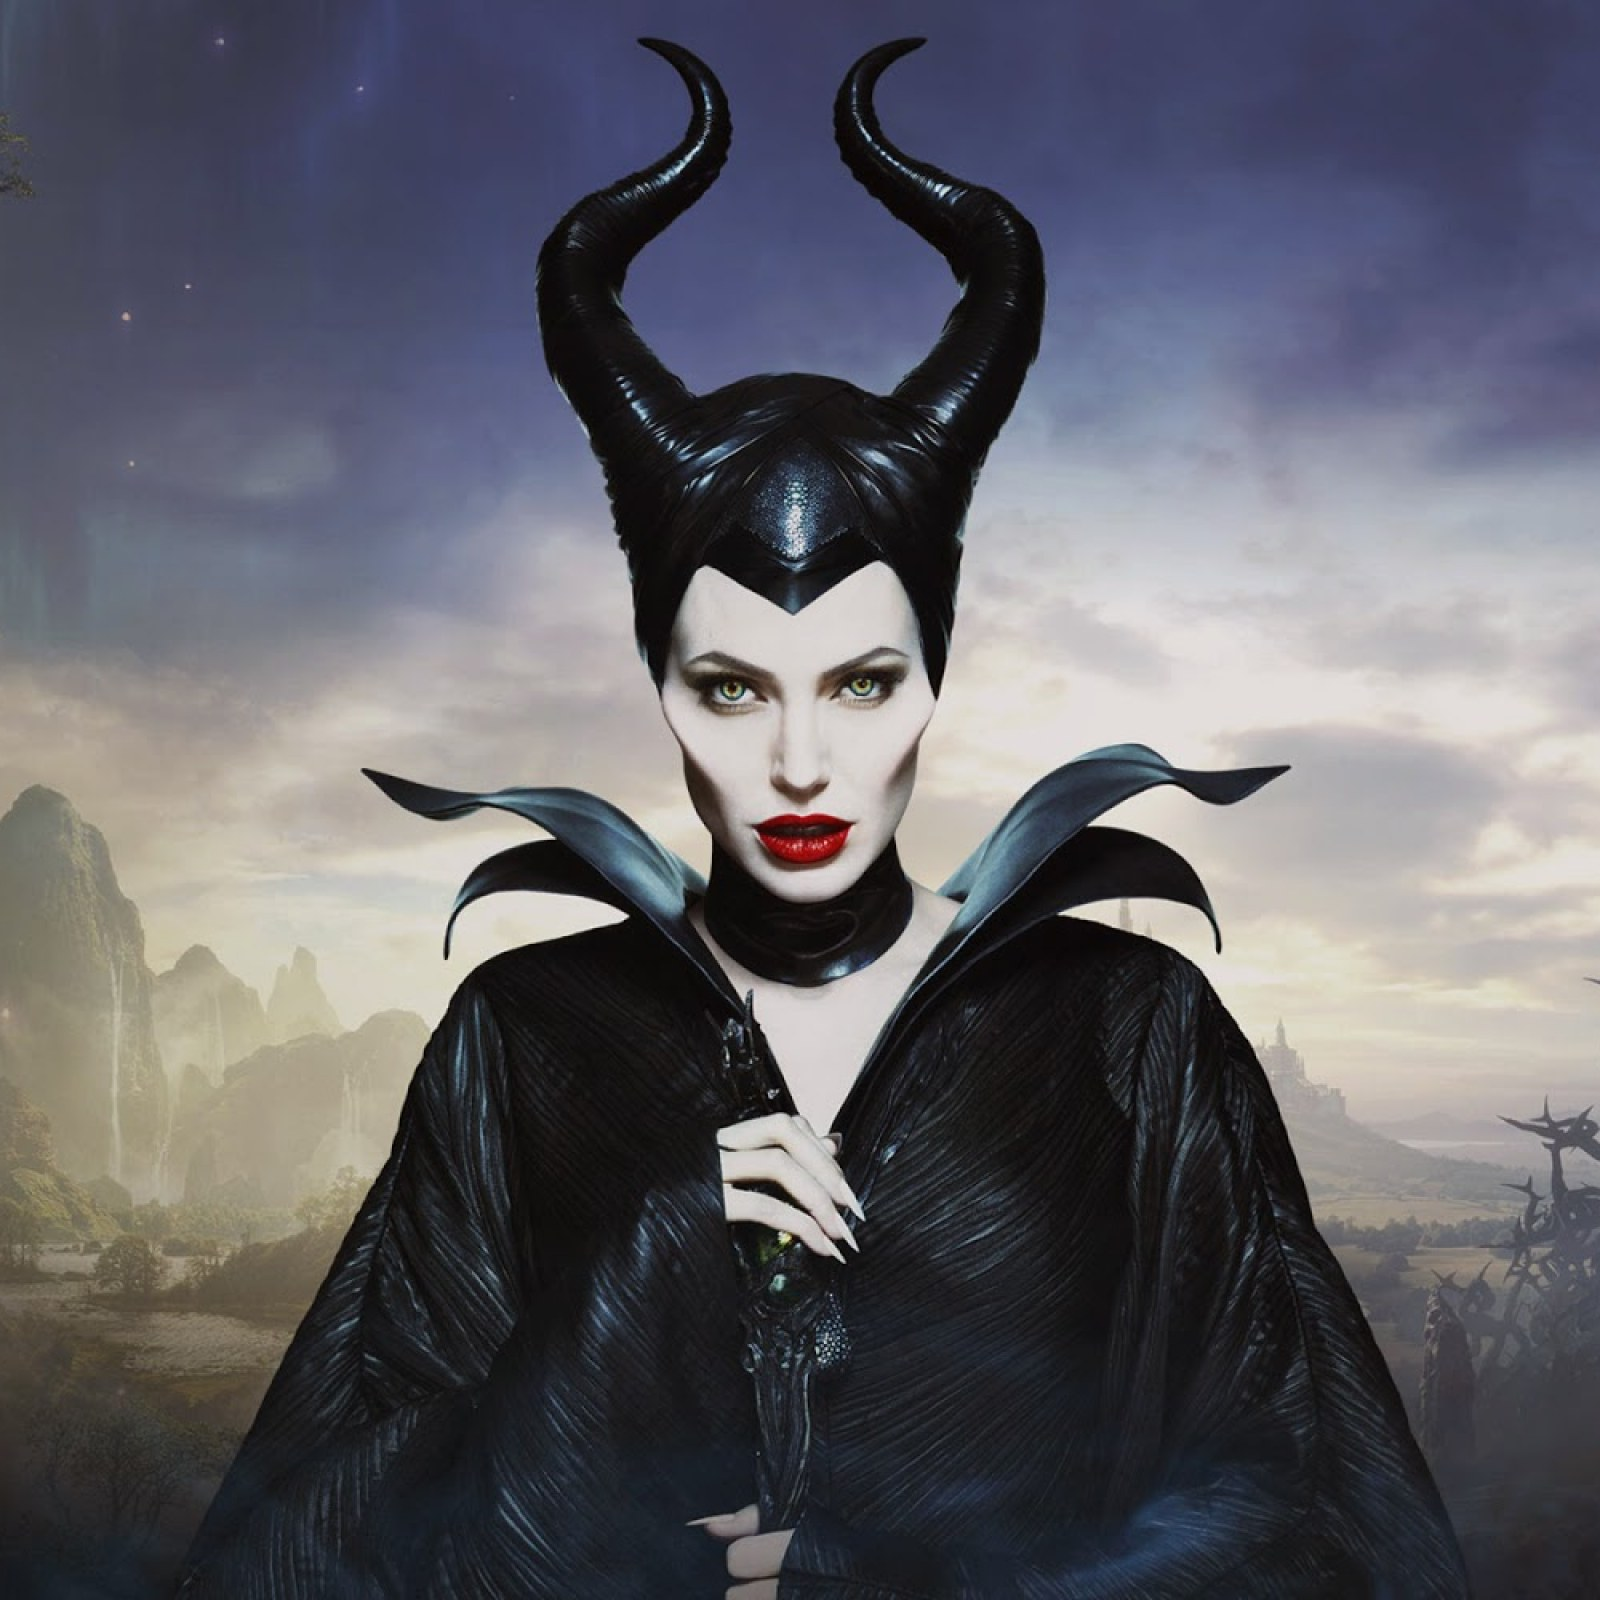 Maleficent Recap What Happened In The First Movie